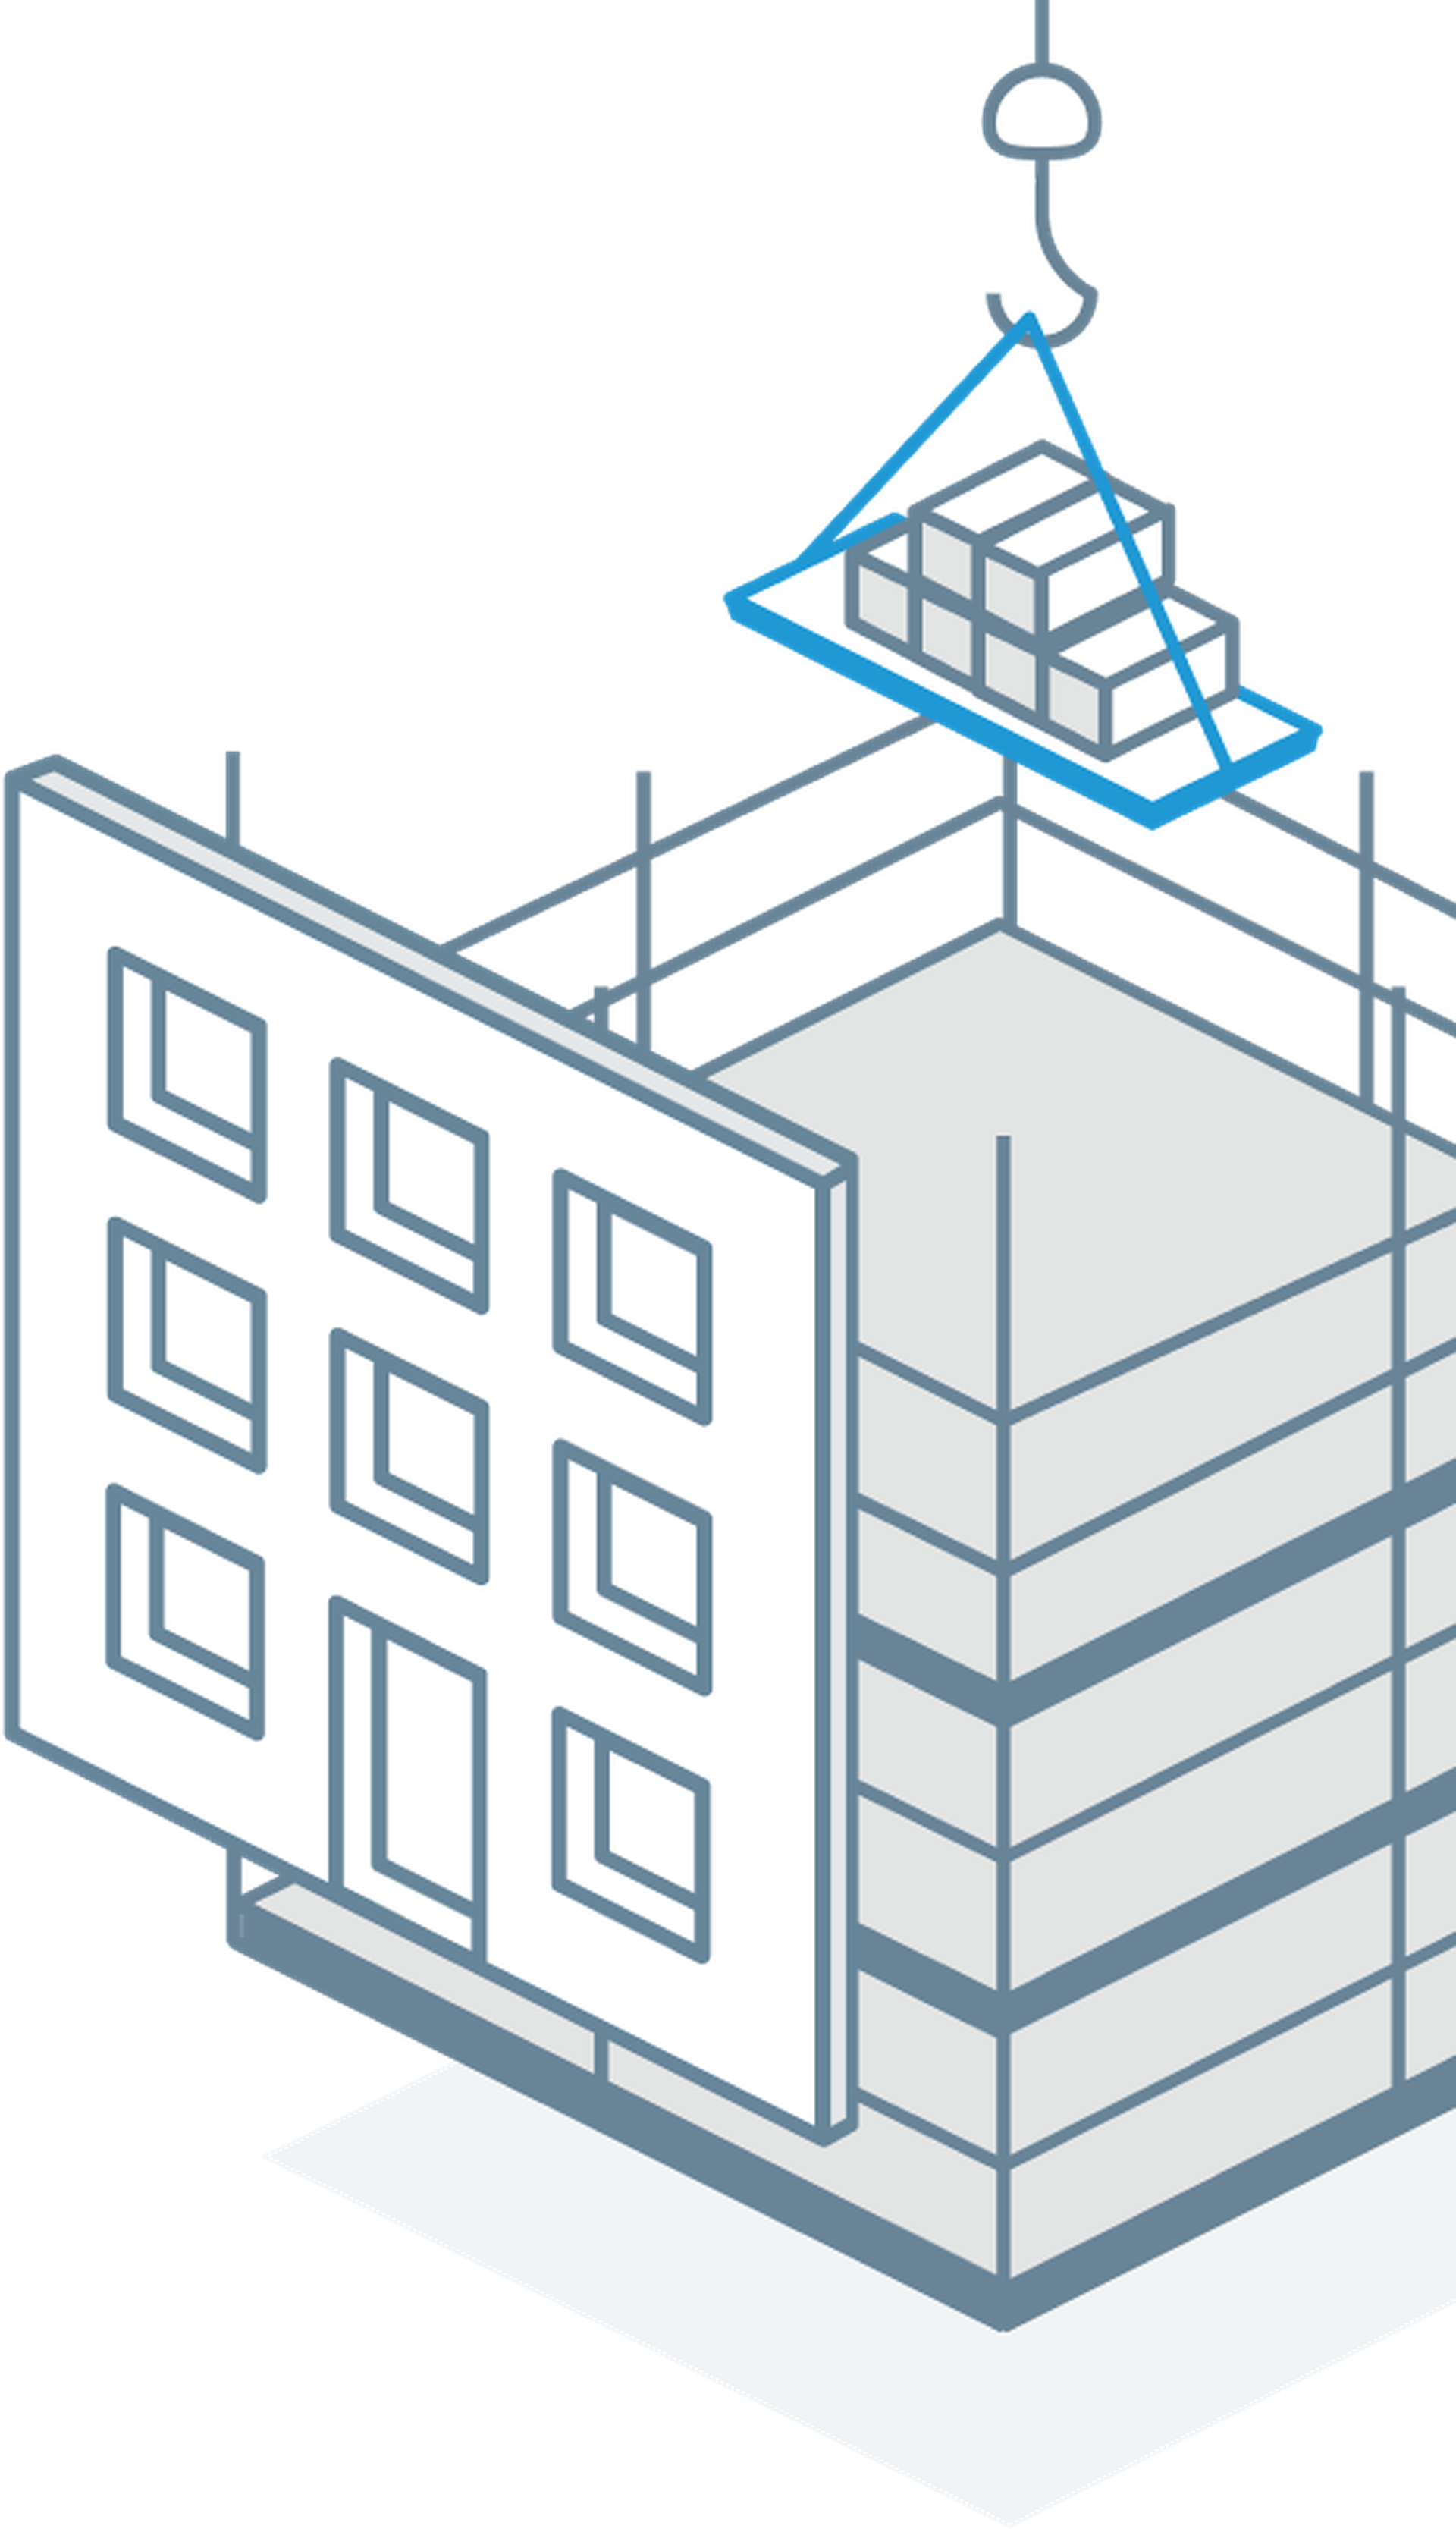 Autodesk Build isometric drawing of a building under construction.